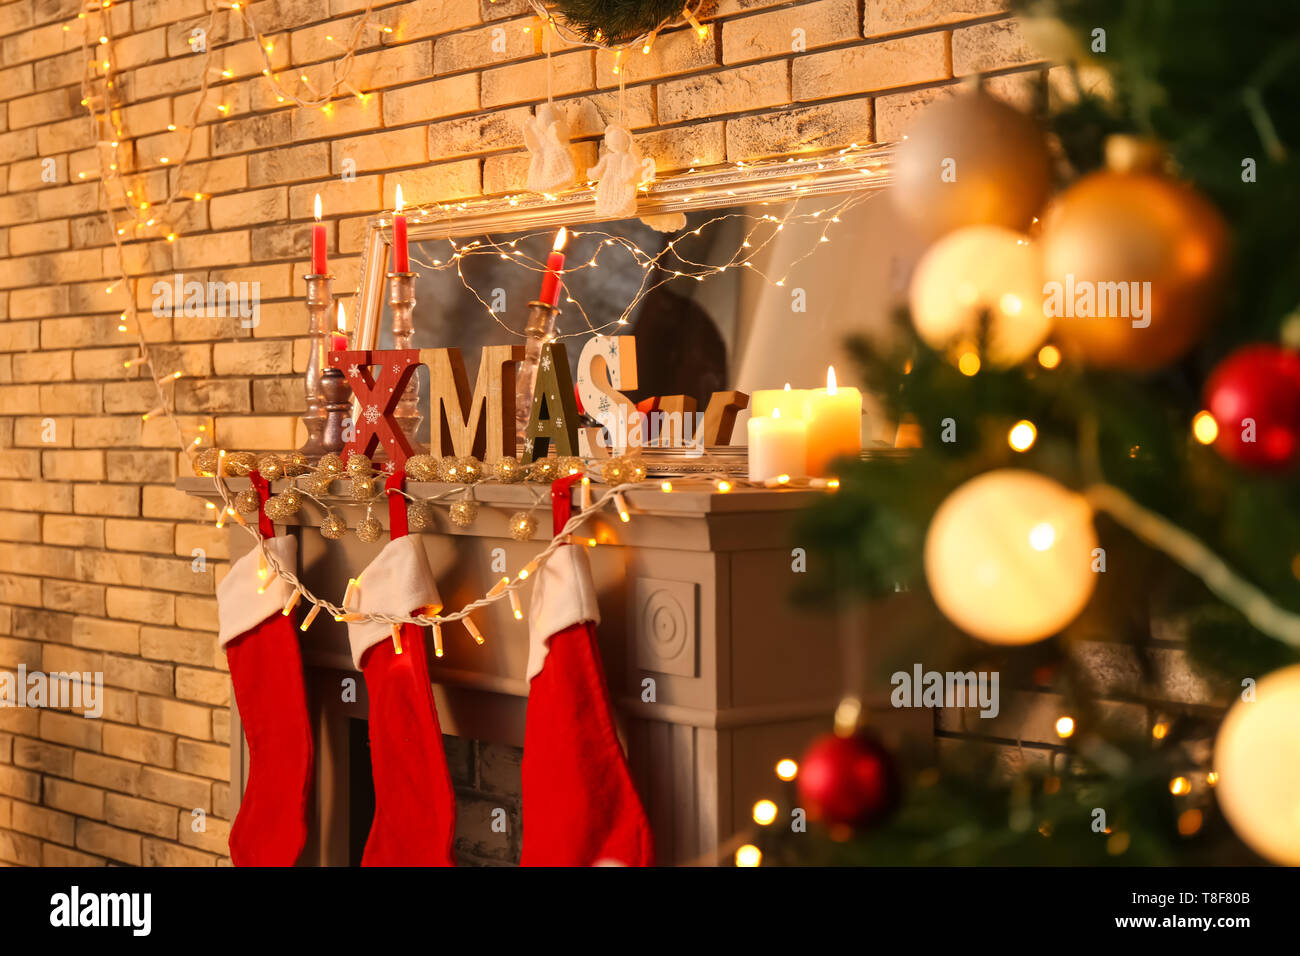 Word Xmas Made Of Wooden Letters With Christmas Decorations On